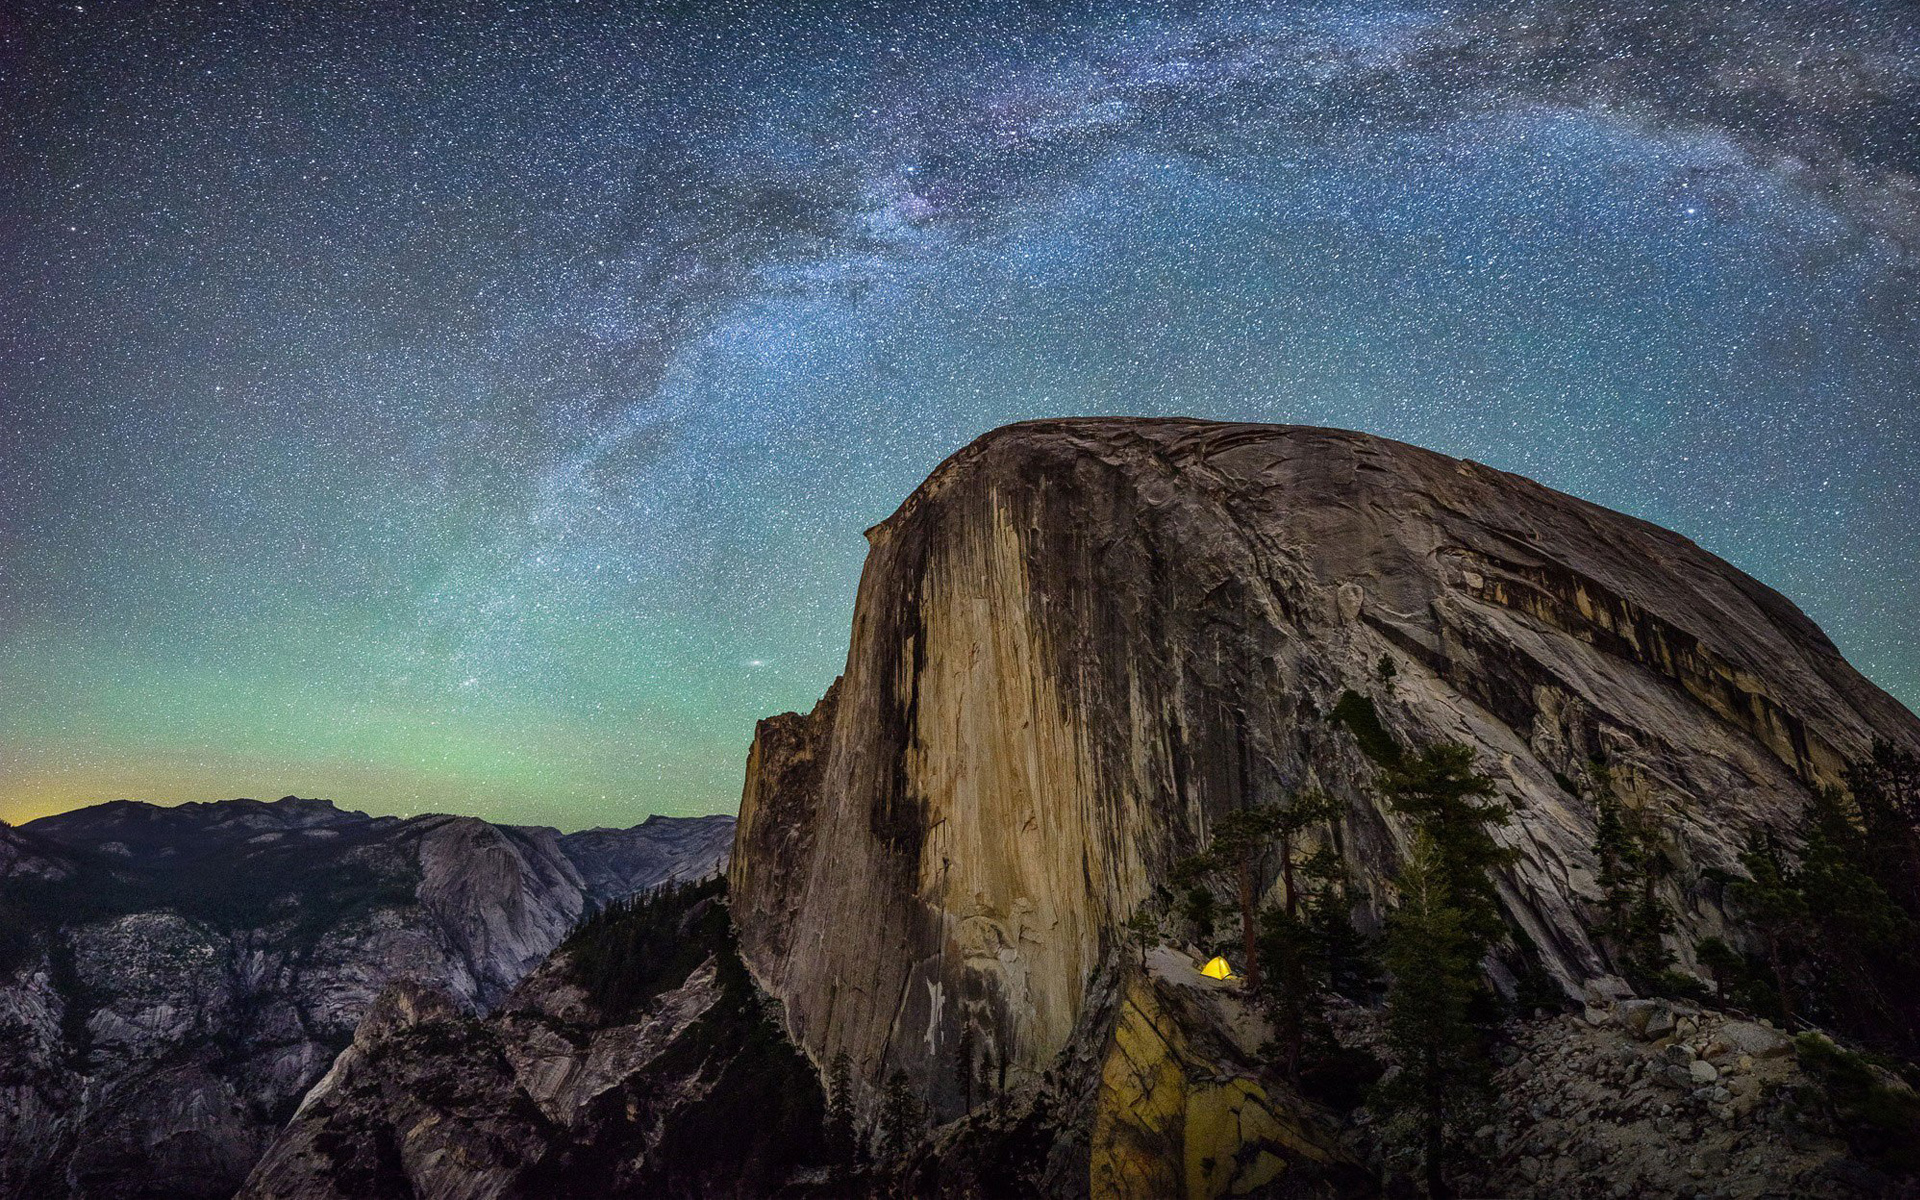 HD Wallpapers Yosemite Camp